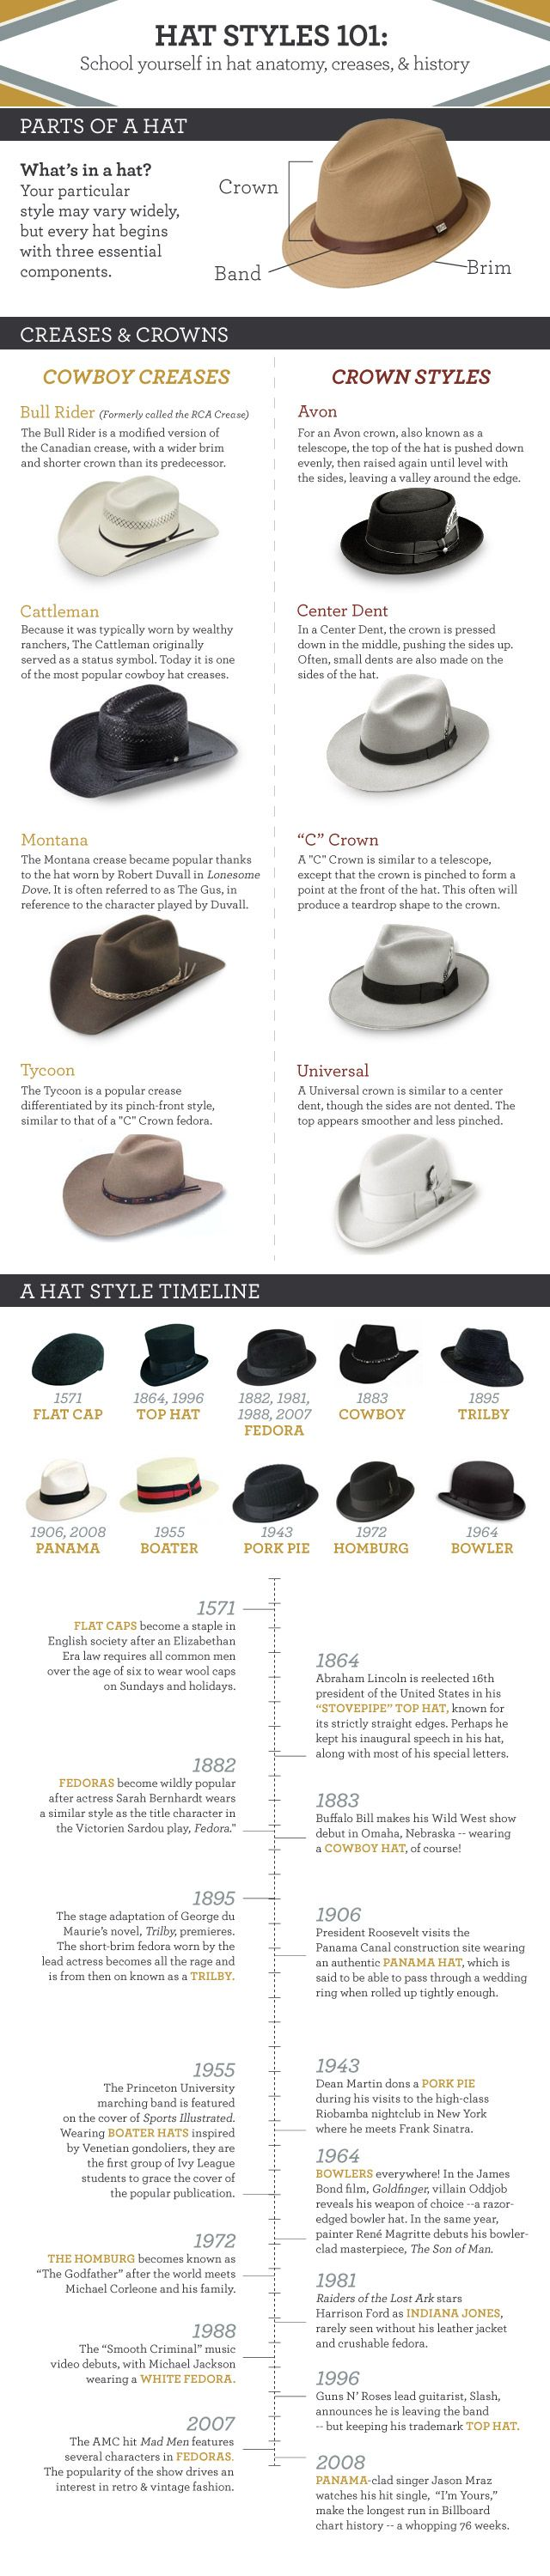 hat styles 101 infographic